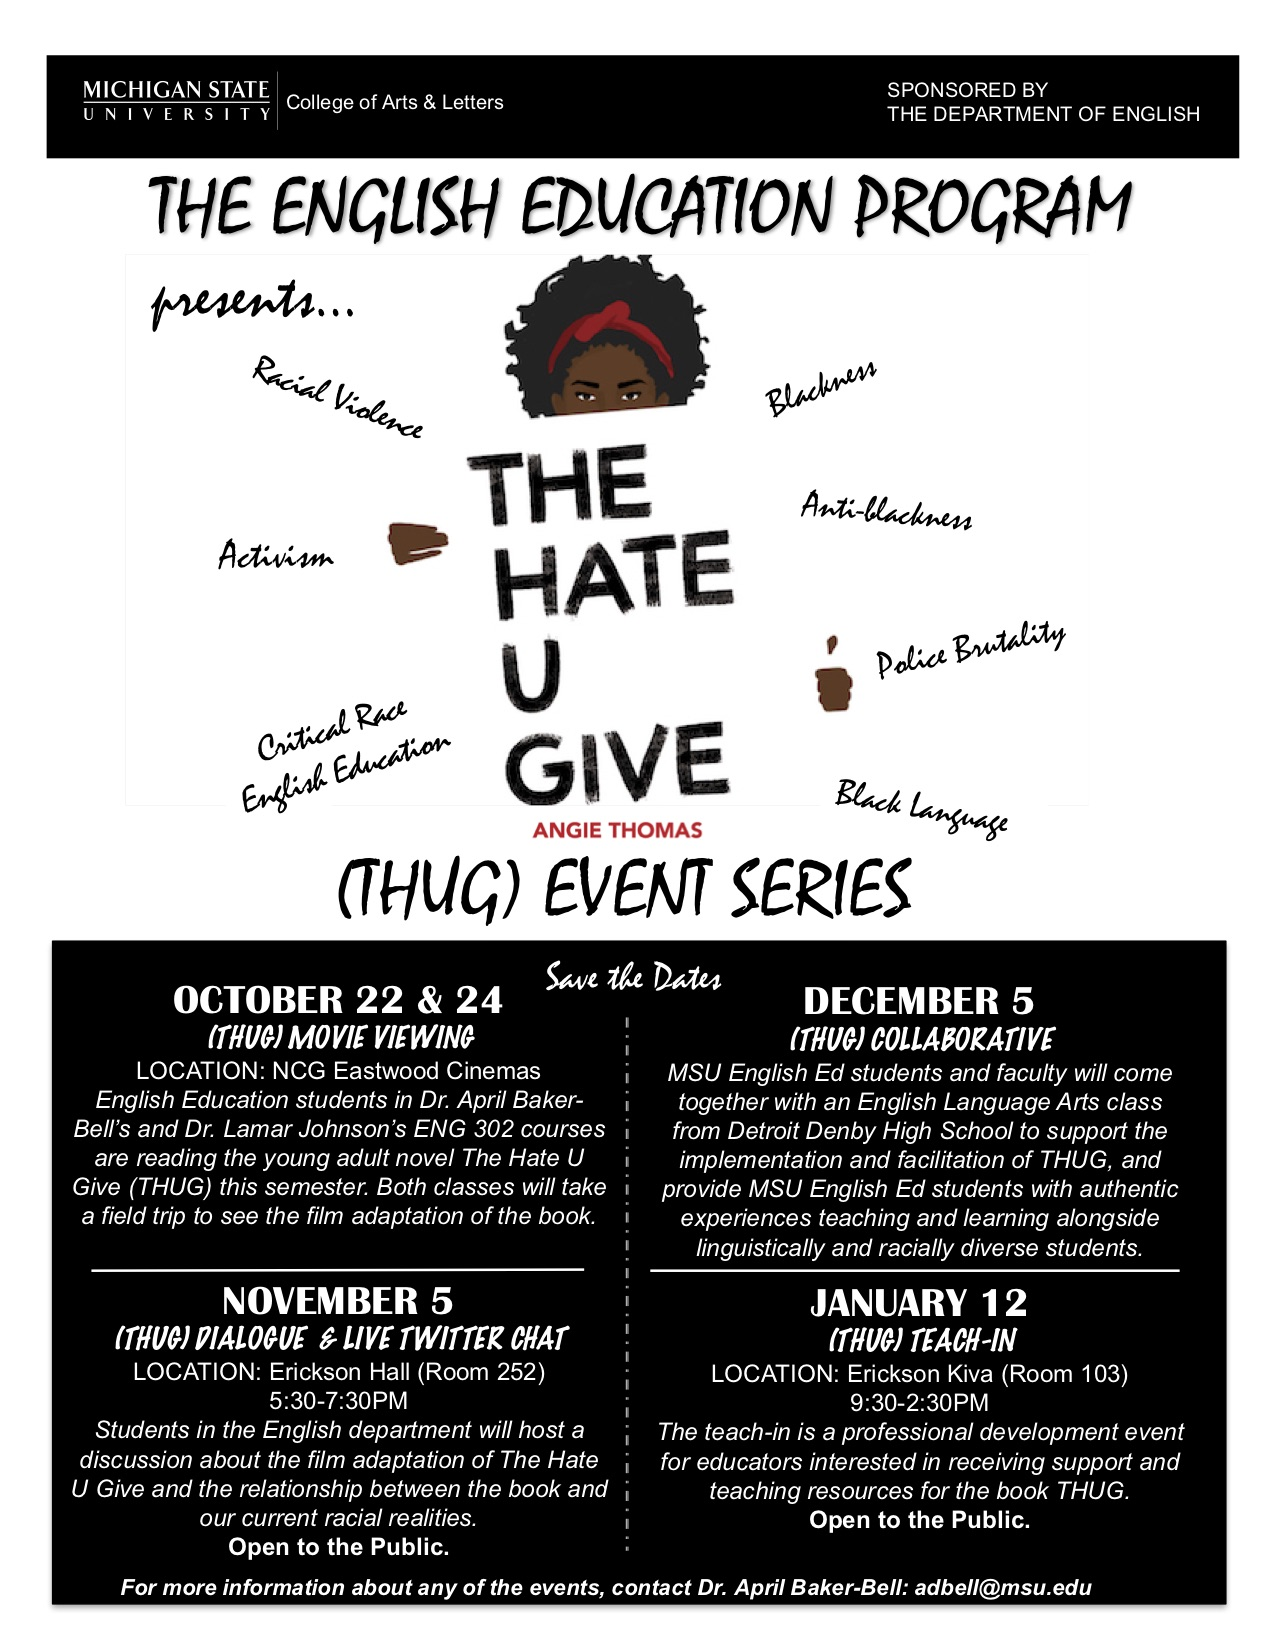 The English Education Program (THUG) Teach-In @ Erickson Kiva (Room 103) | East Lansing | Michigan | United States